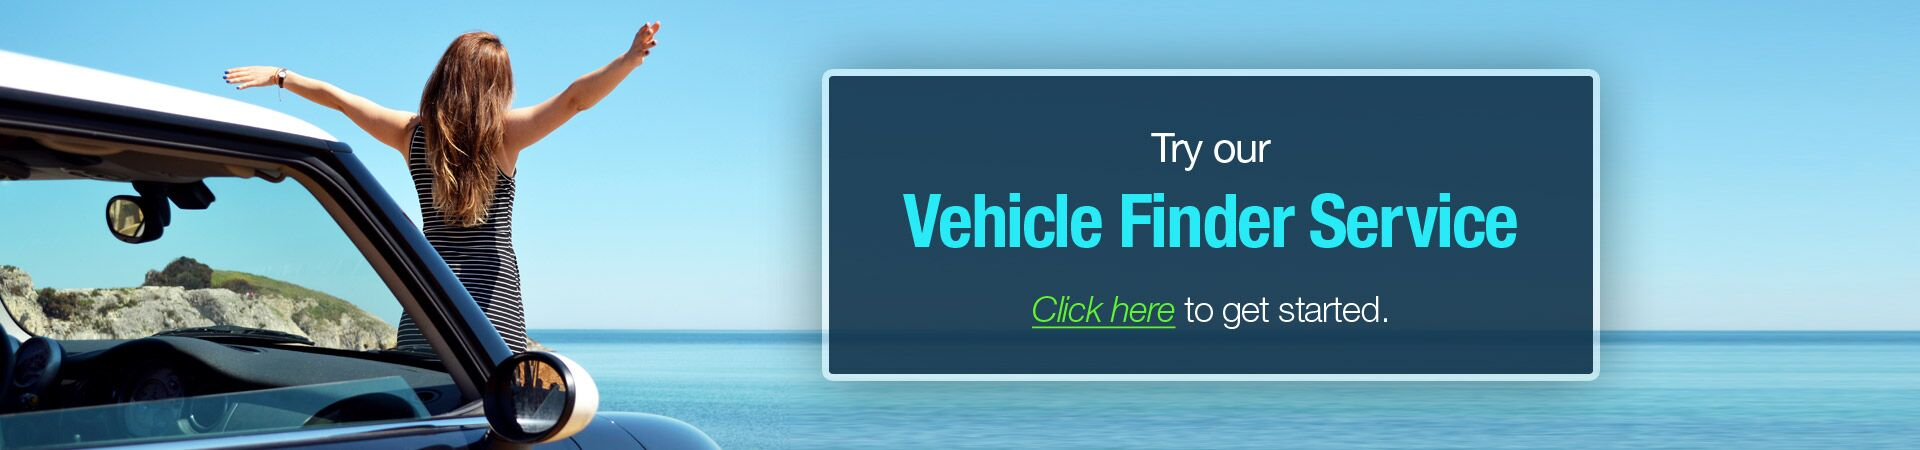 Find your Vehicle